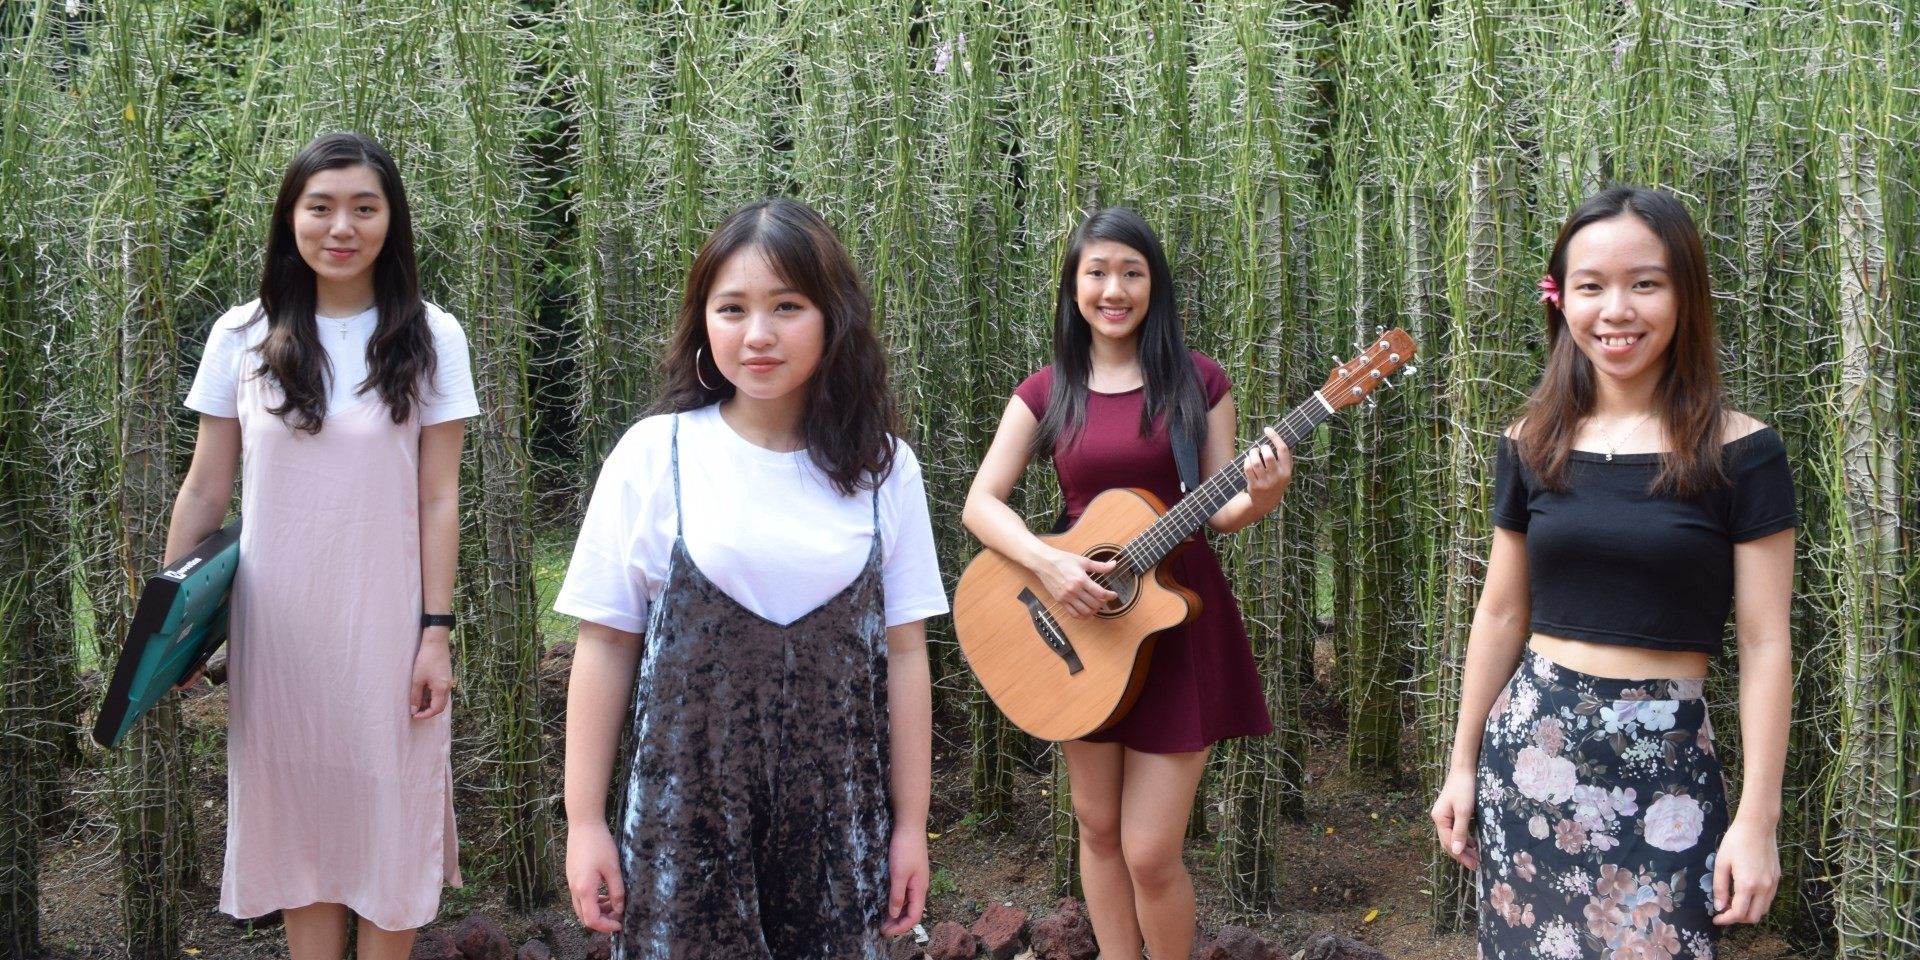 Inter-university music event, VarCity SG, to feature budding musicians from local unis